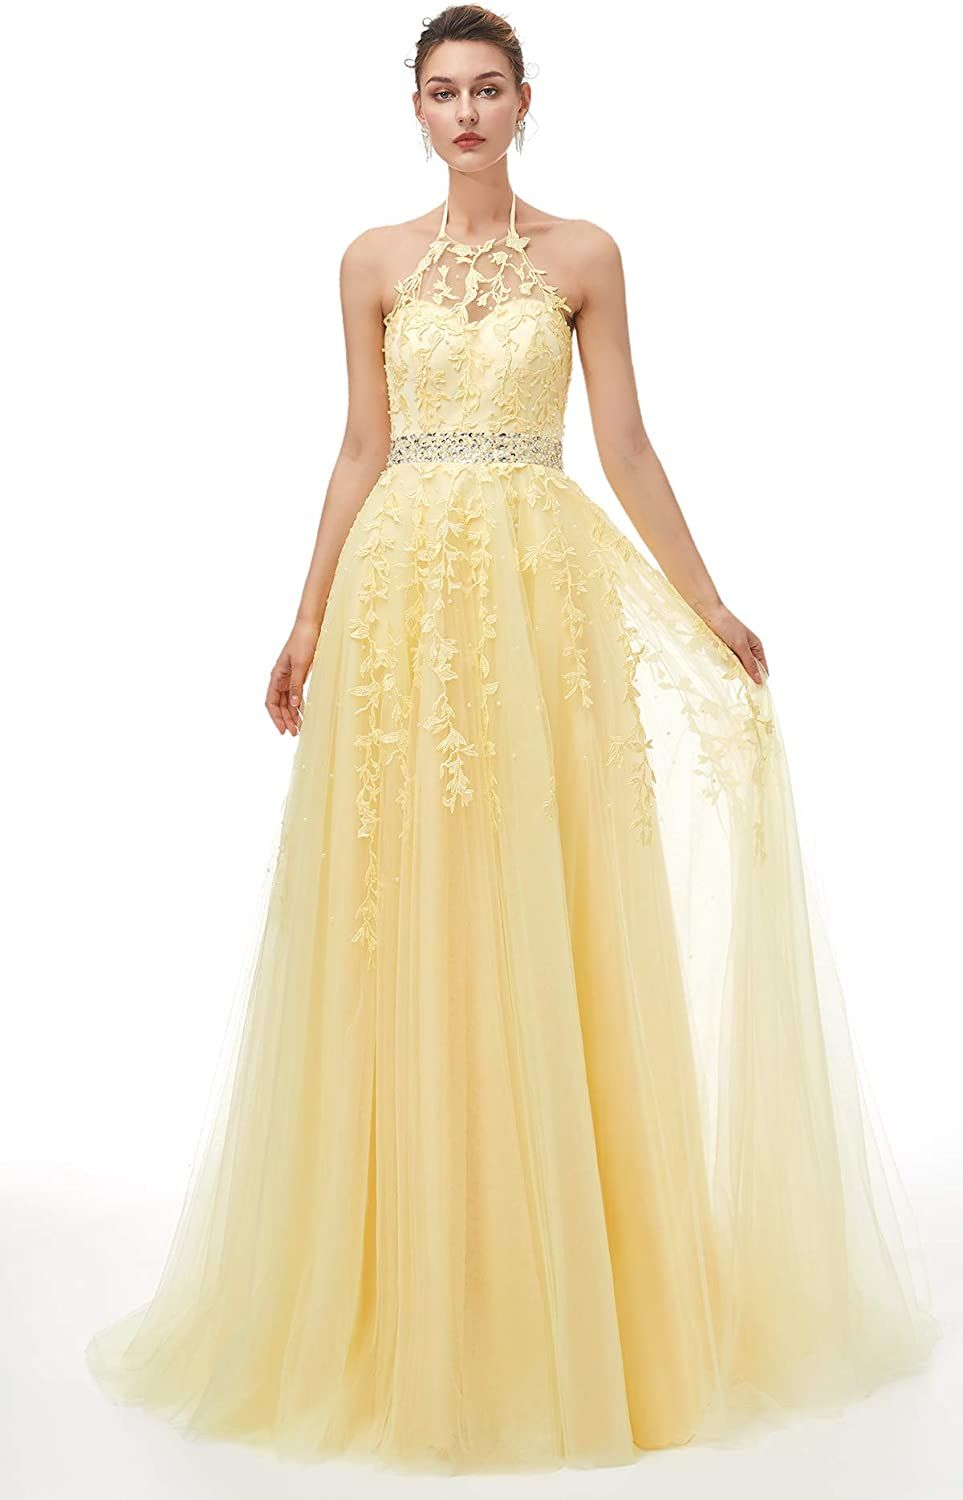 Sexy Halter Prom Dress Long Beaded Appliques Tulle Evening Dress Formal Party Gowns For Women Robe De Soiree Gown Abendkleider недорого